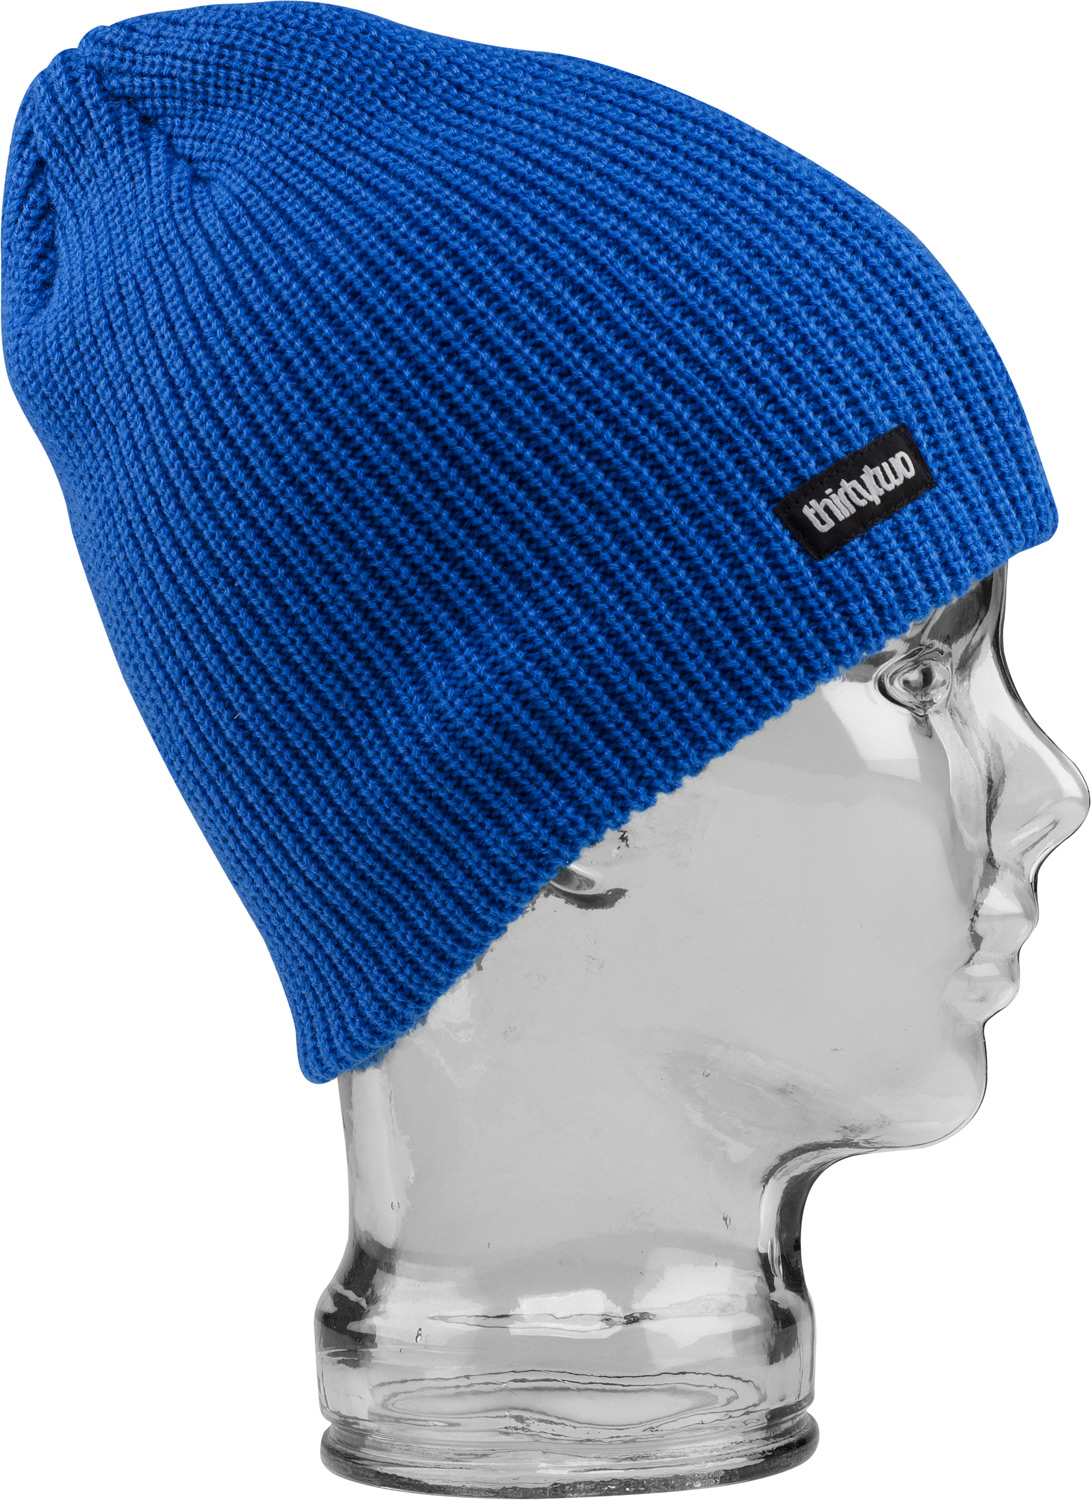 Key Features of the 32 - Thirty Two Standard Beanie: 100% acrylic solid color sag beanie with woven label - $15.95